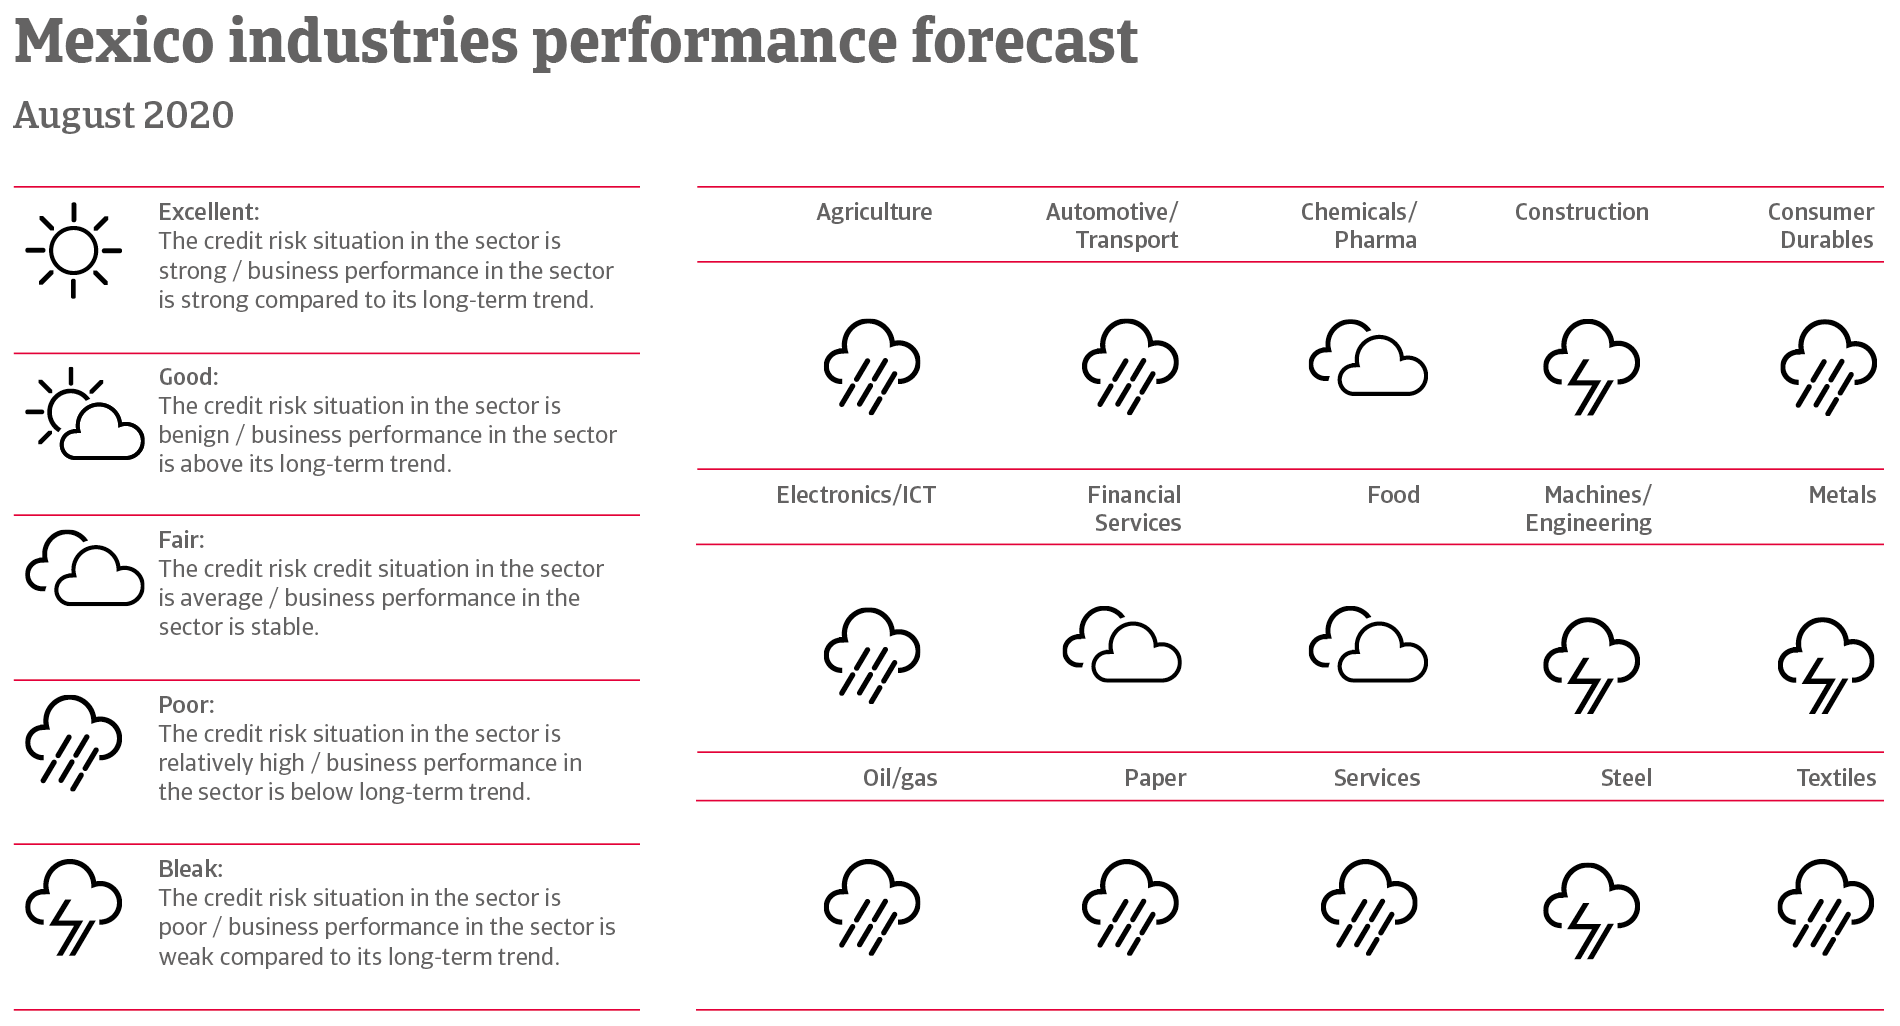 Performance forecast of mexican industries